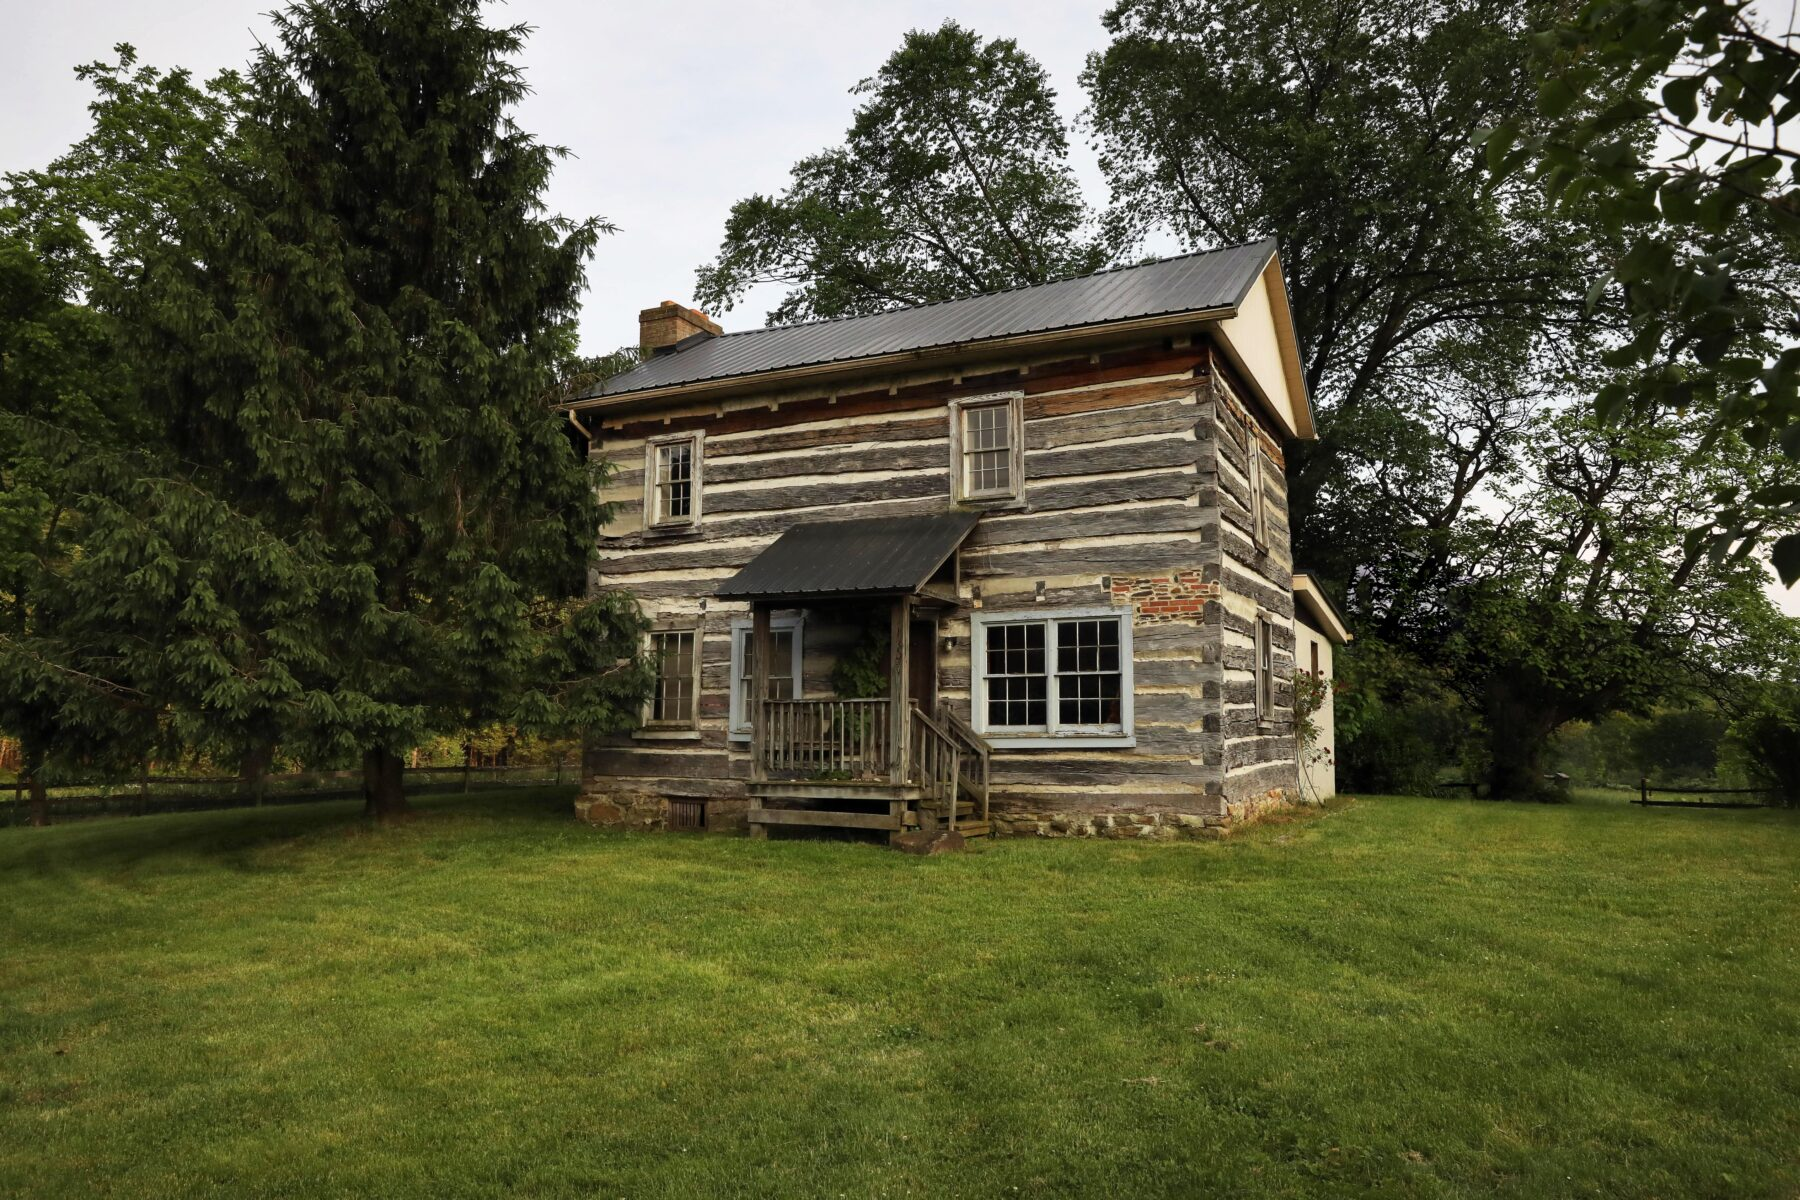 1807 Historic Powell Log Cabin